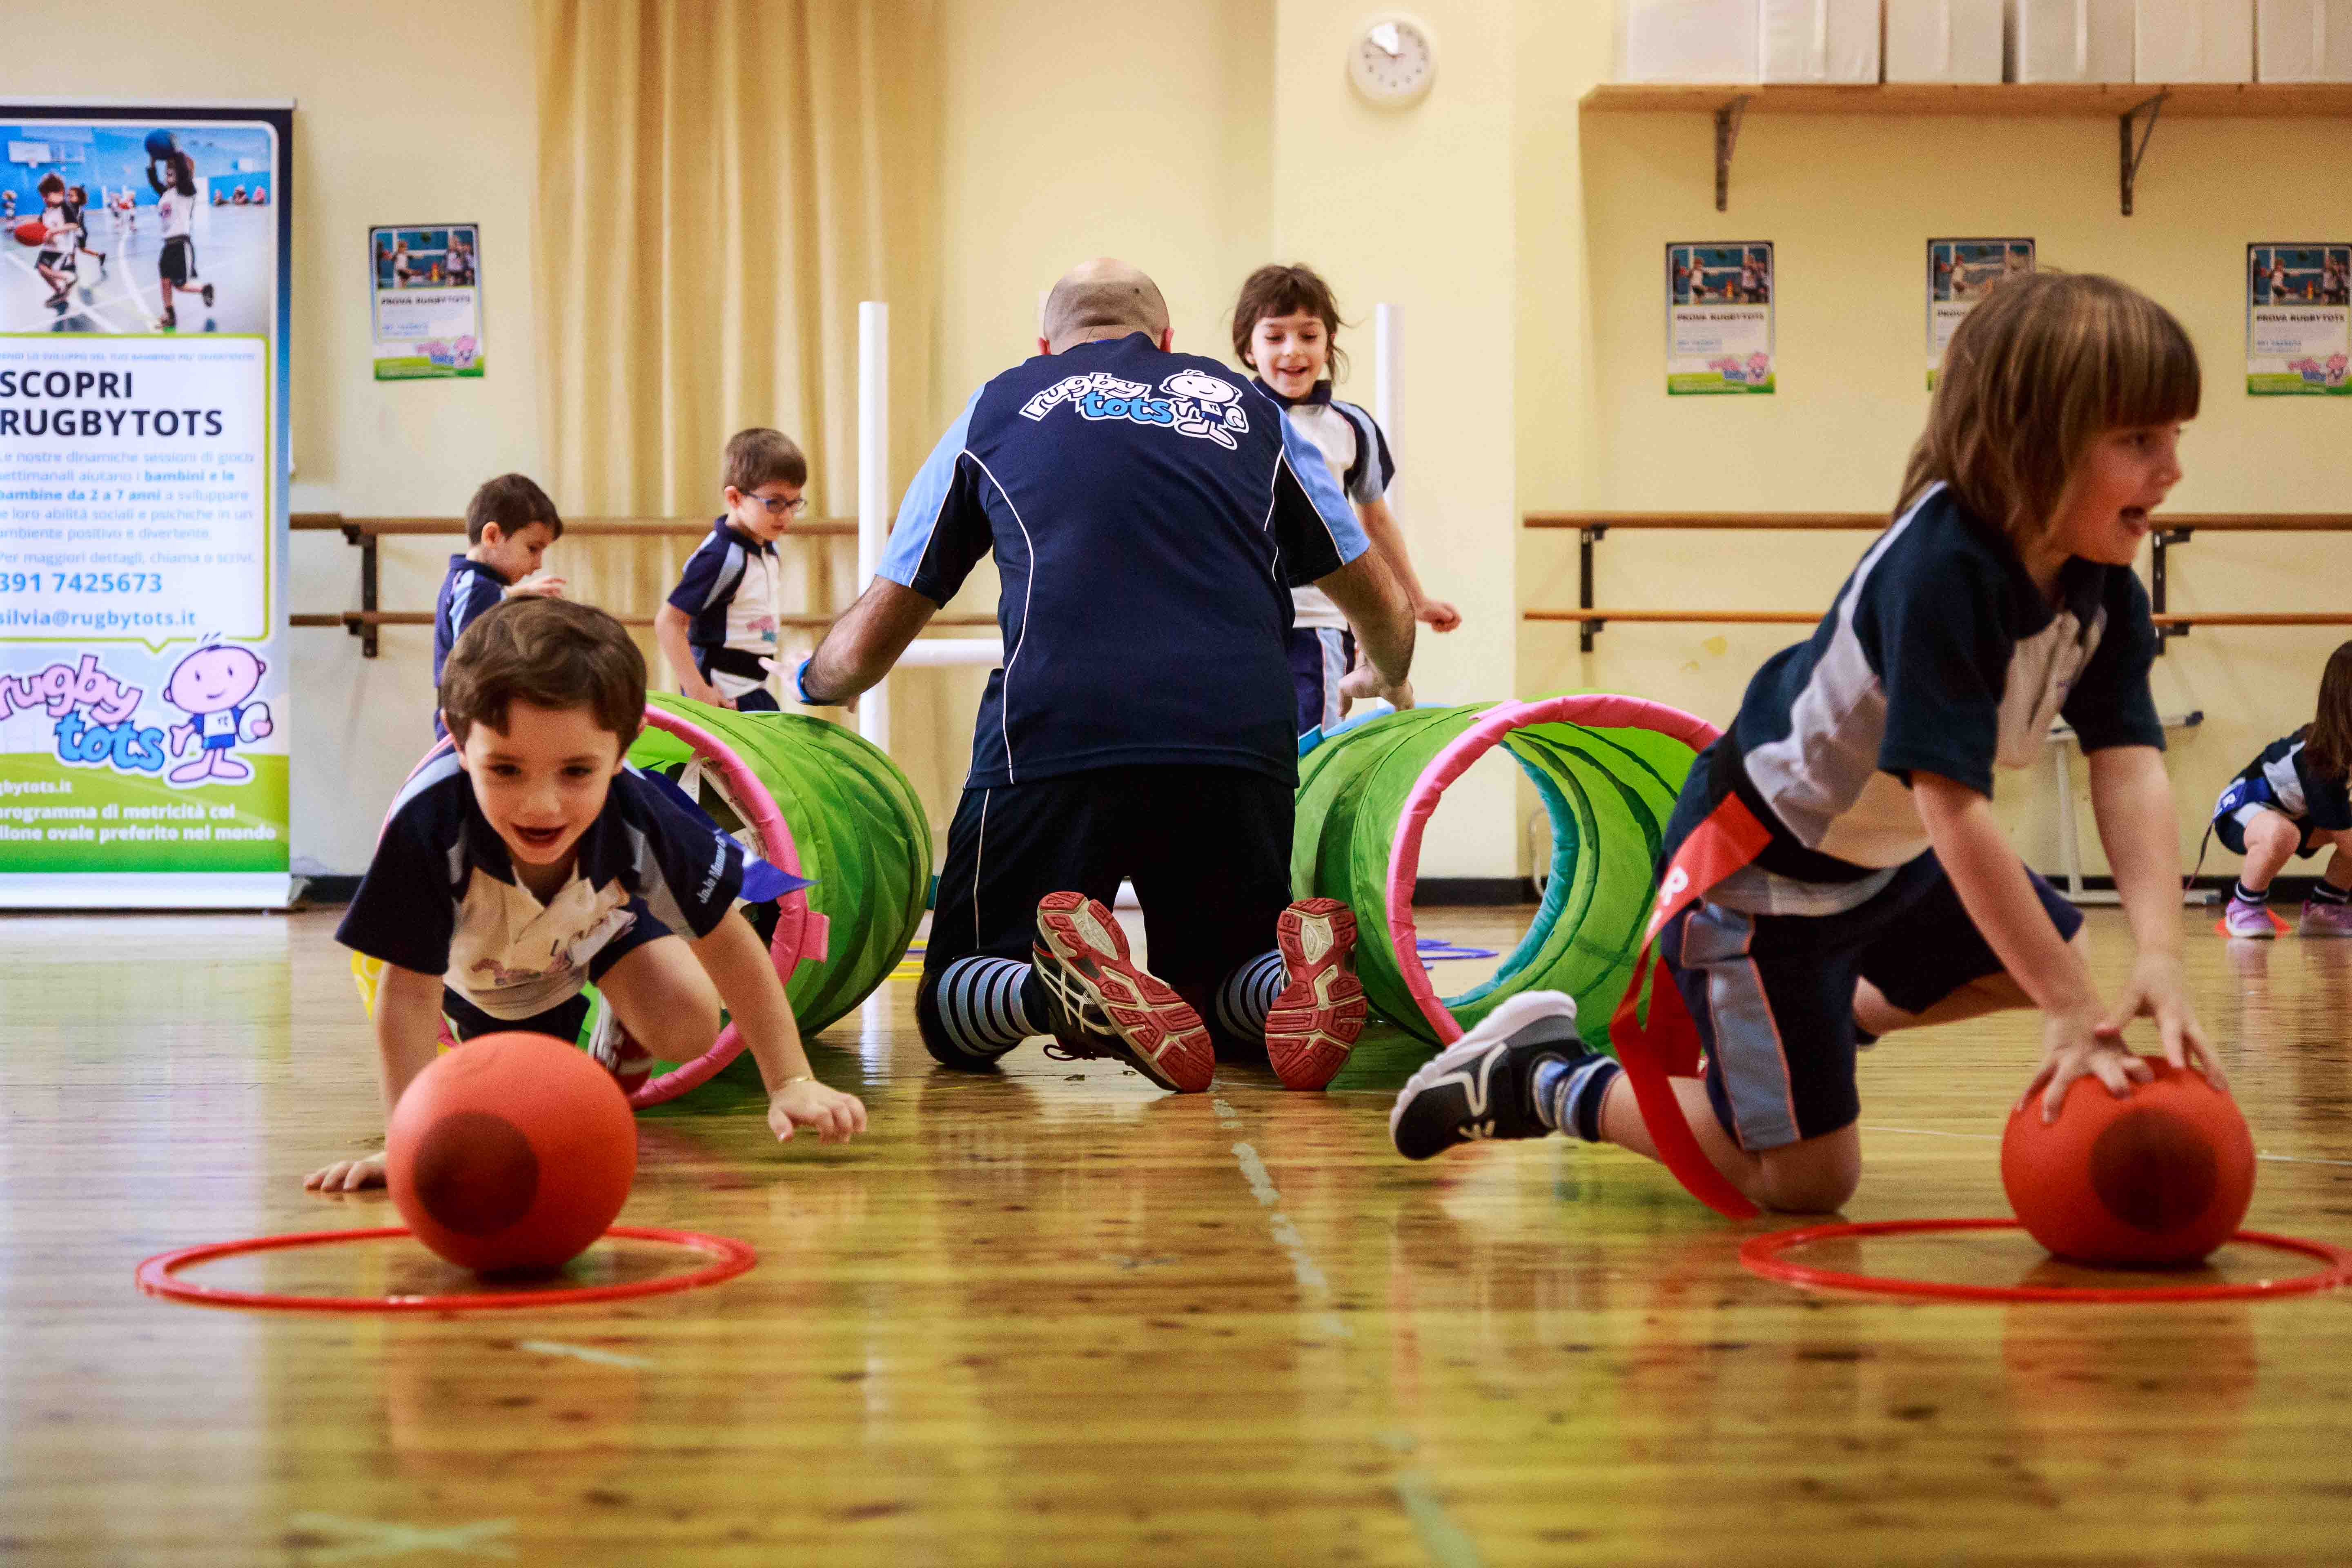 rugbytots-0546.jpg